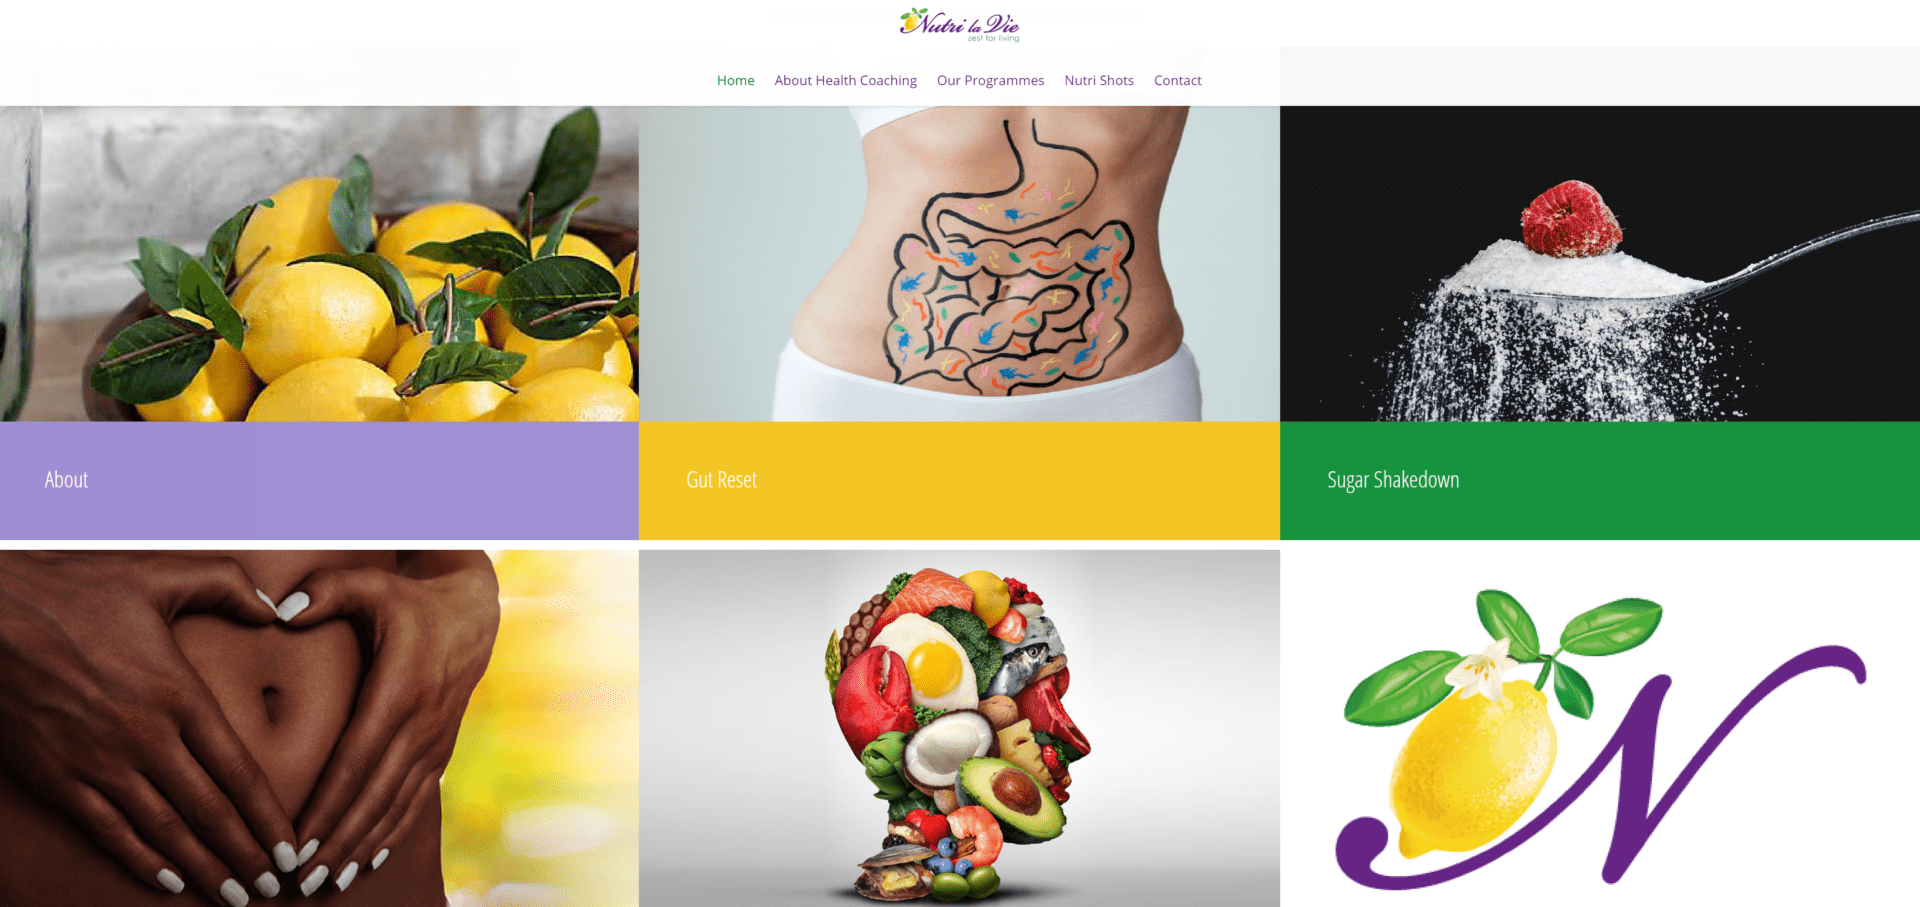 Nutri La View, AOM, Digital Marketing Agency, Recent Work